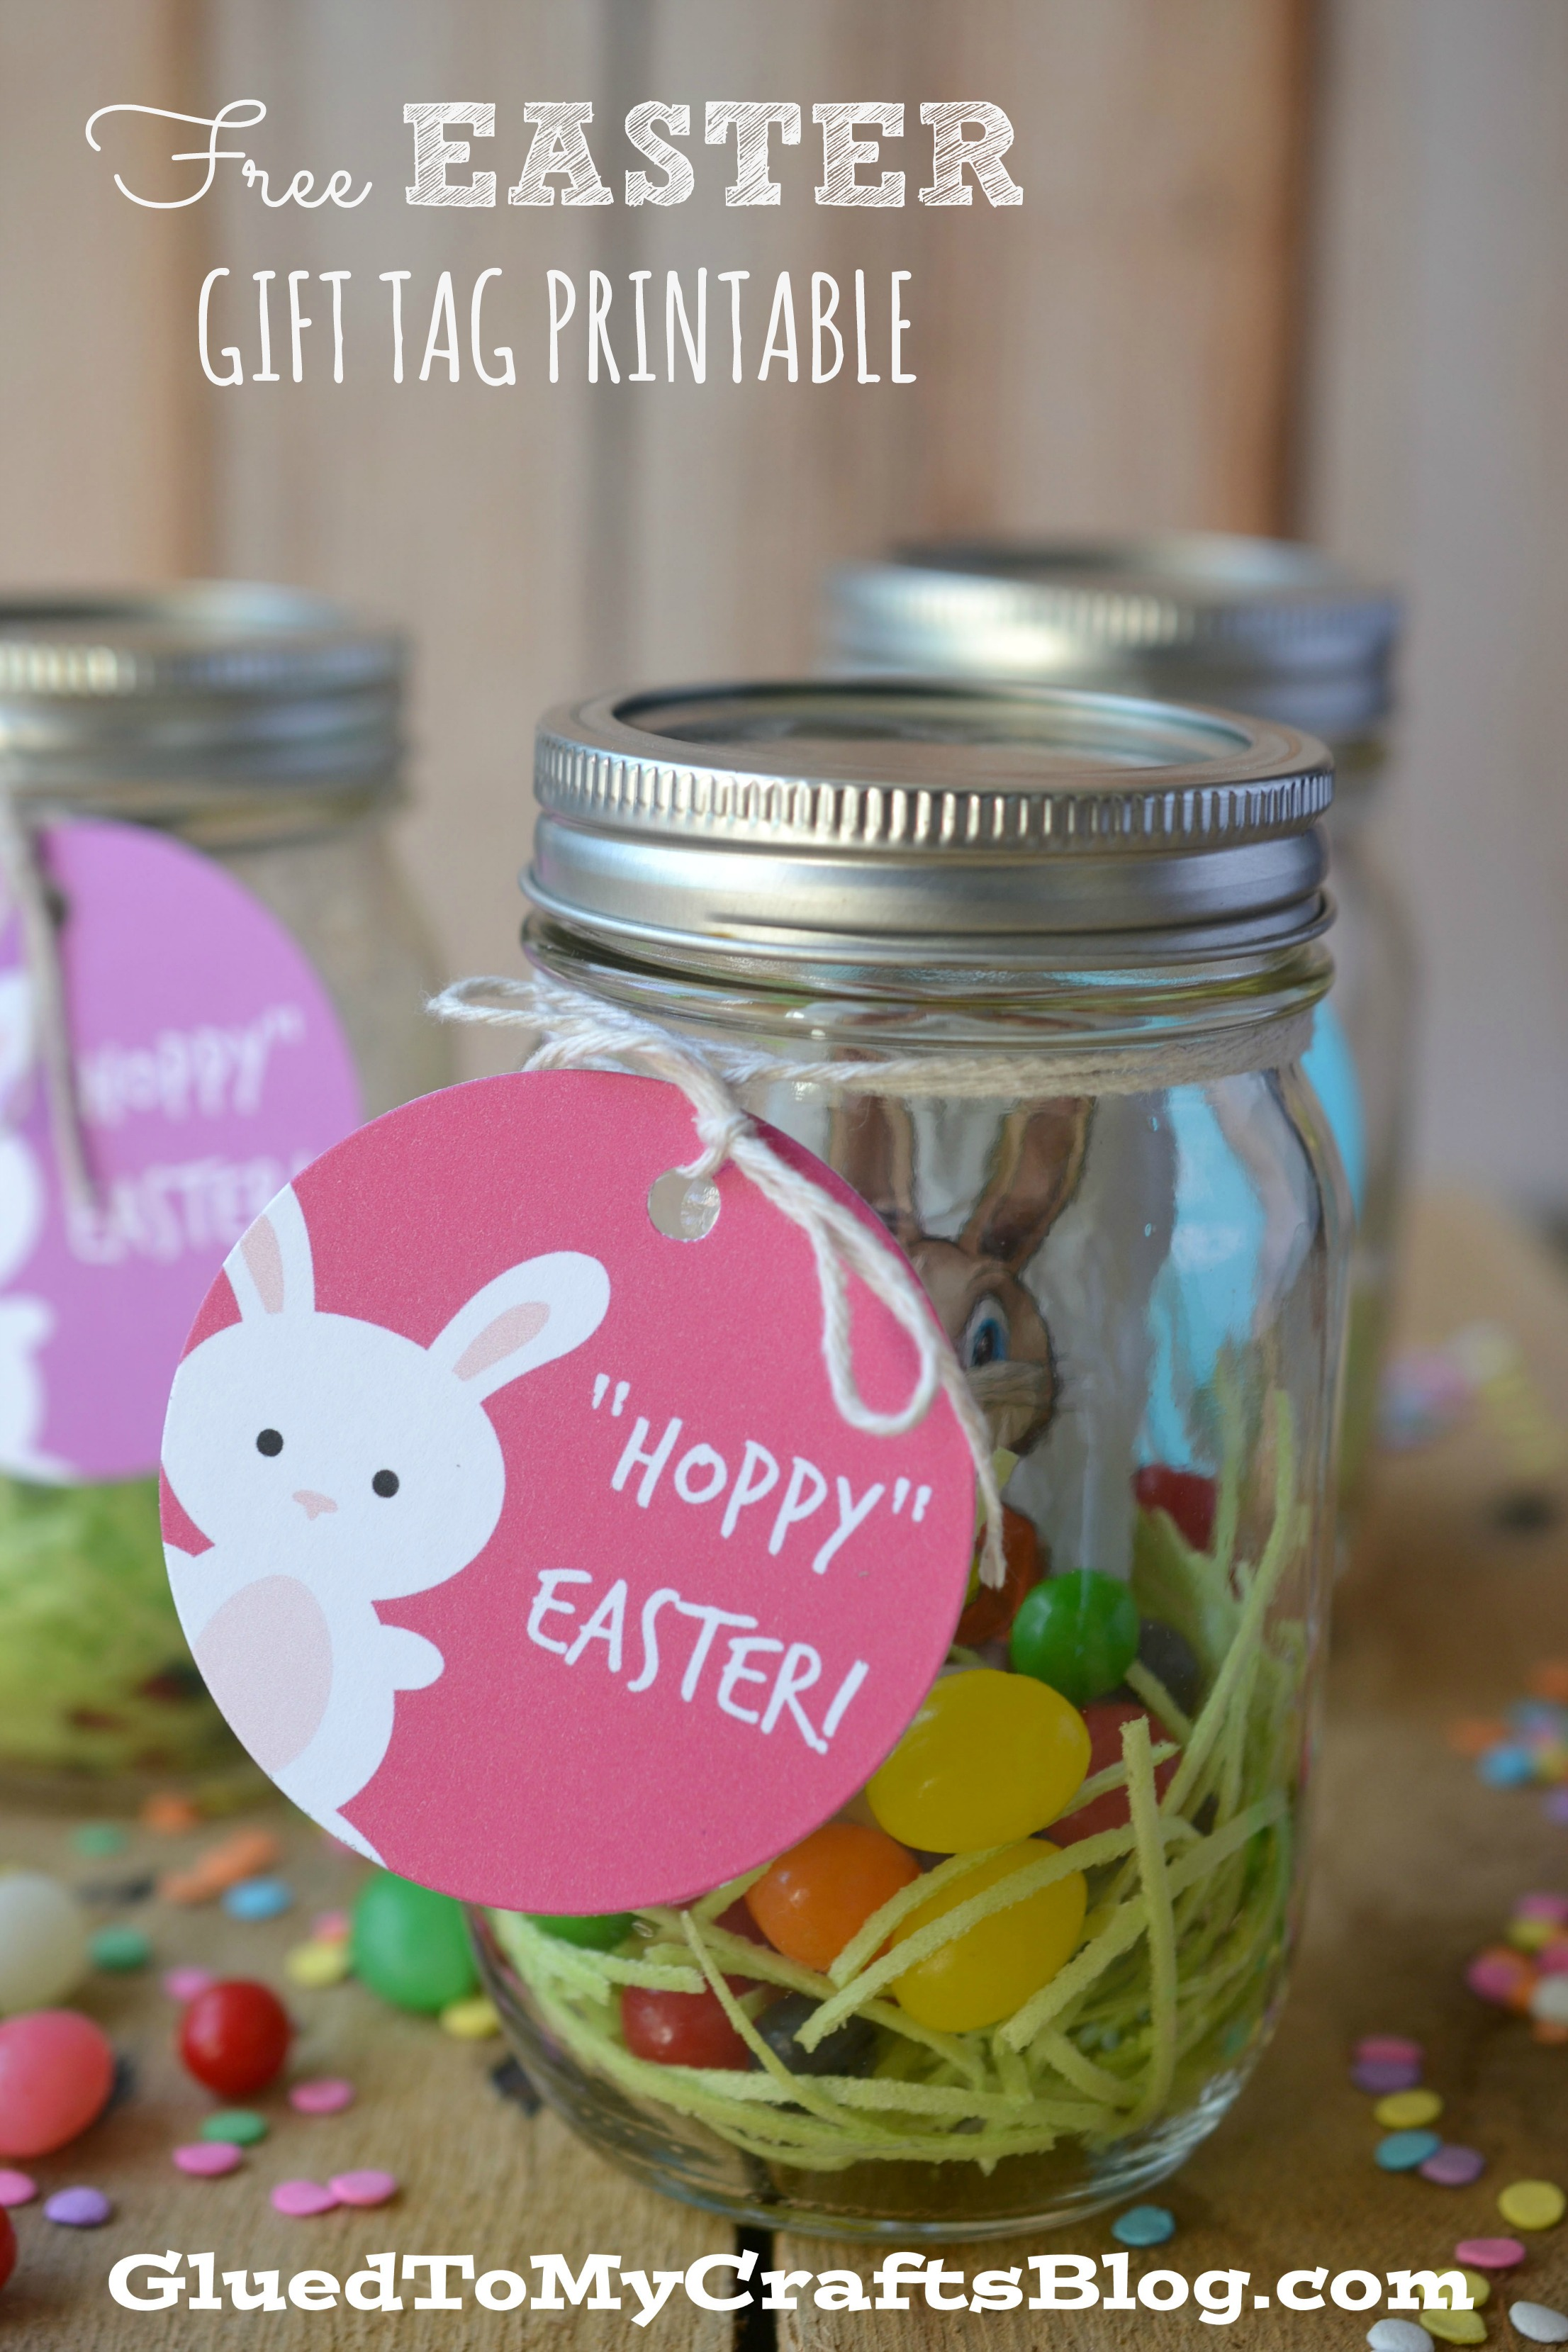 Free HOPPY Easter Gift Tag Printable